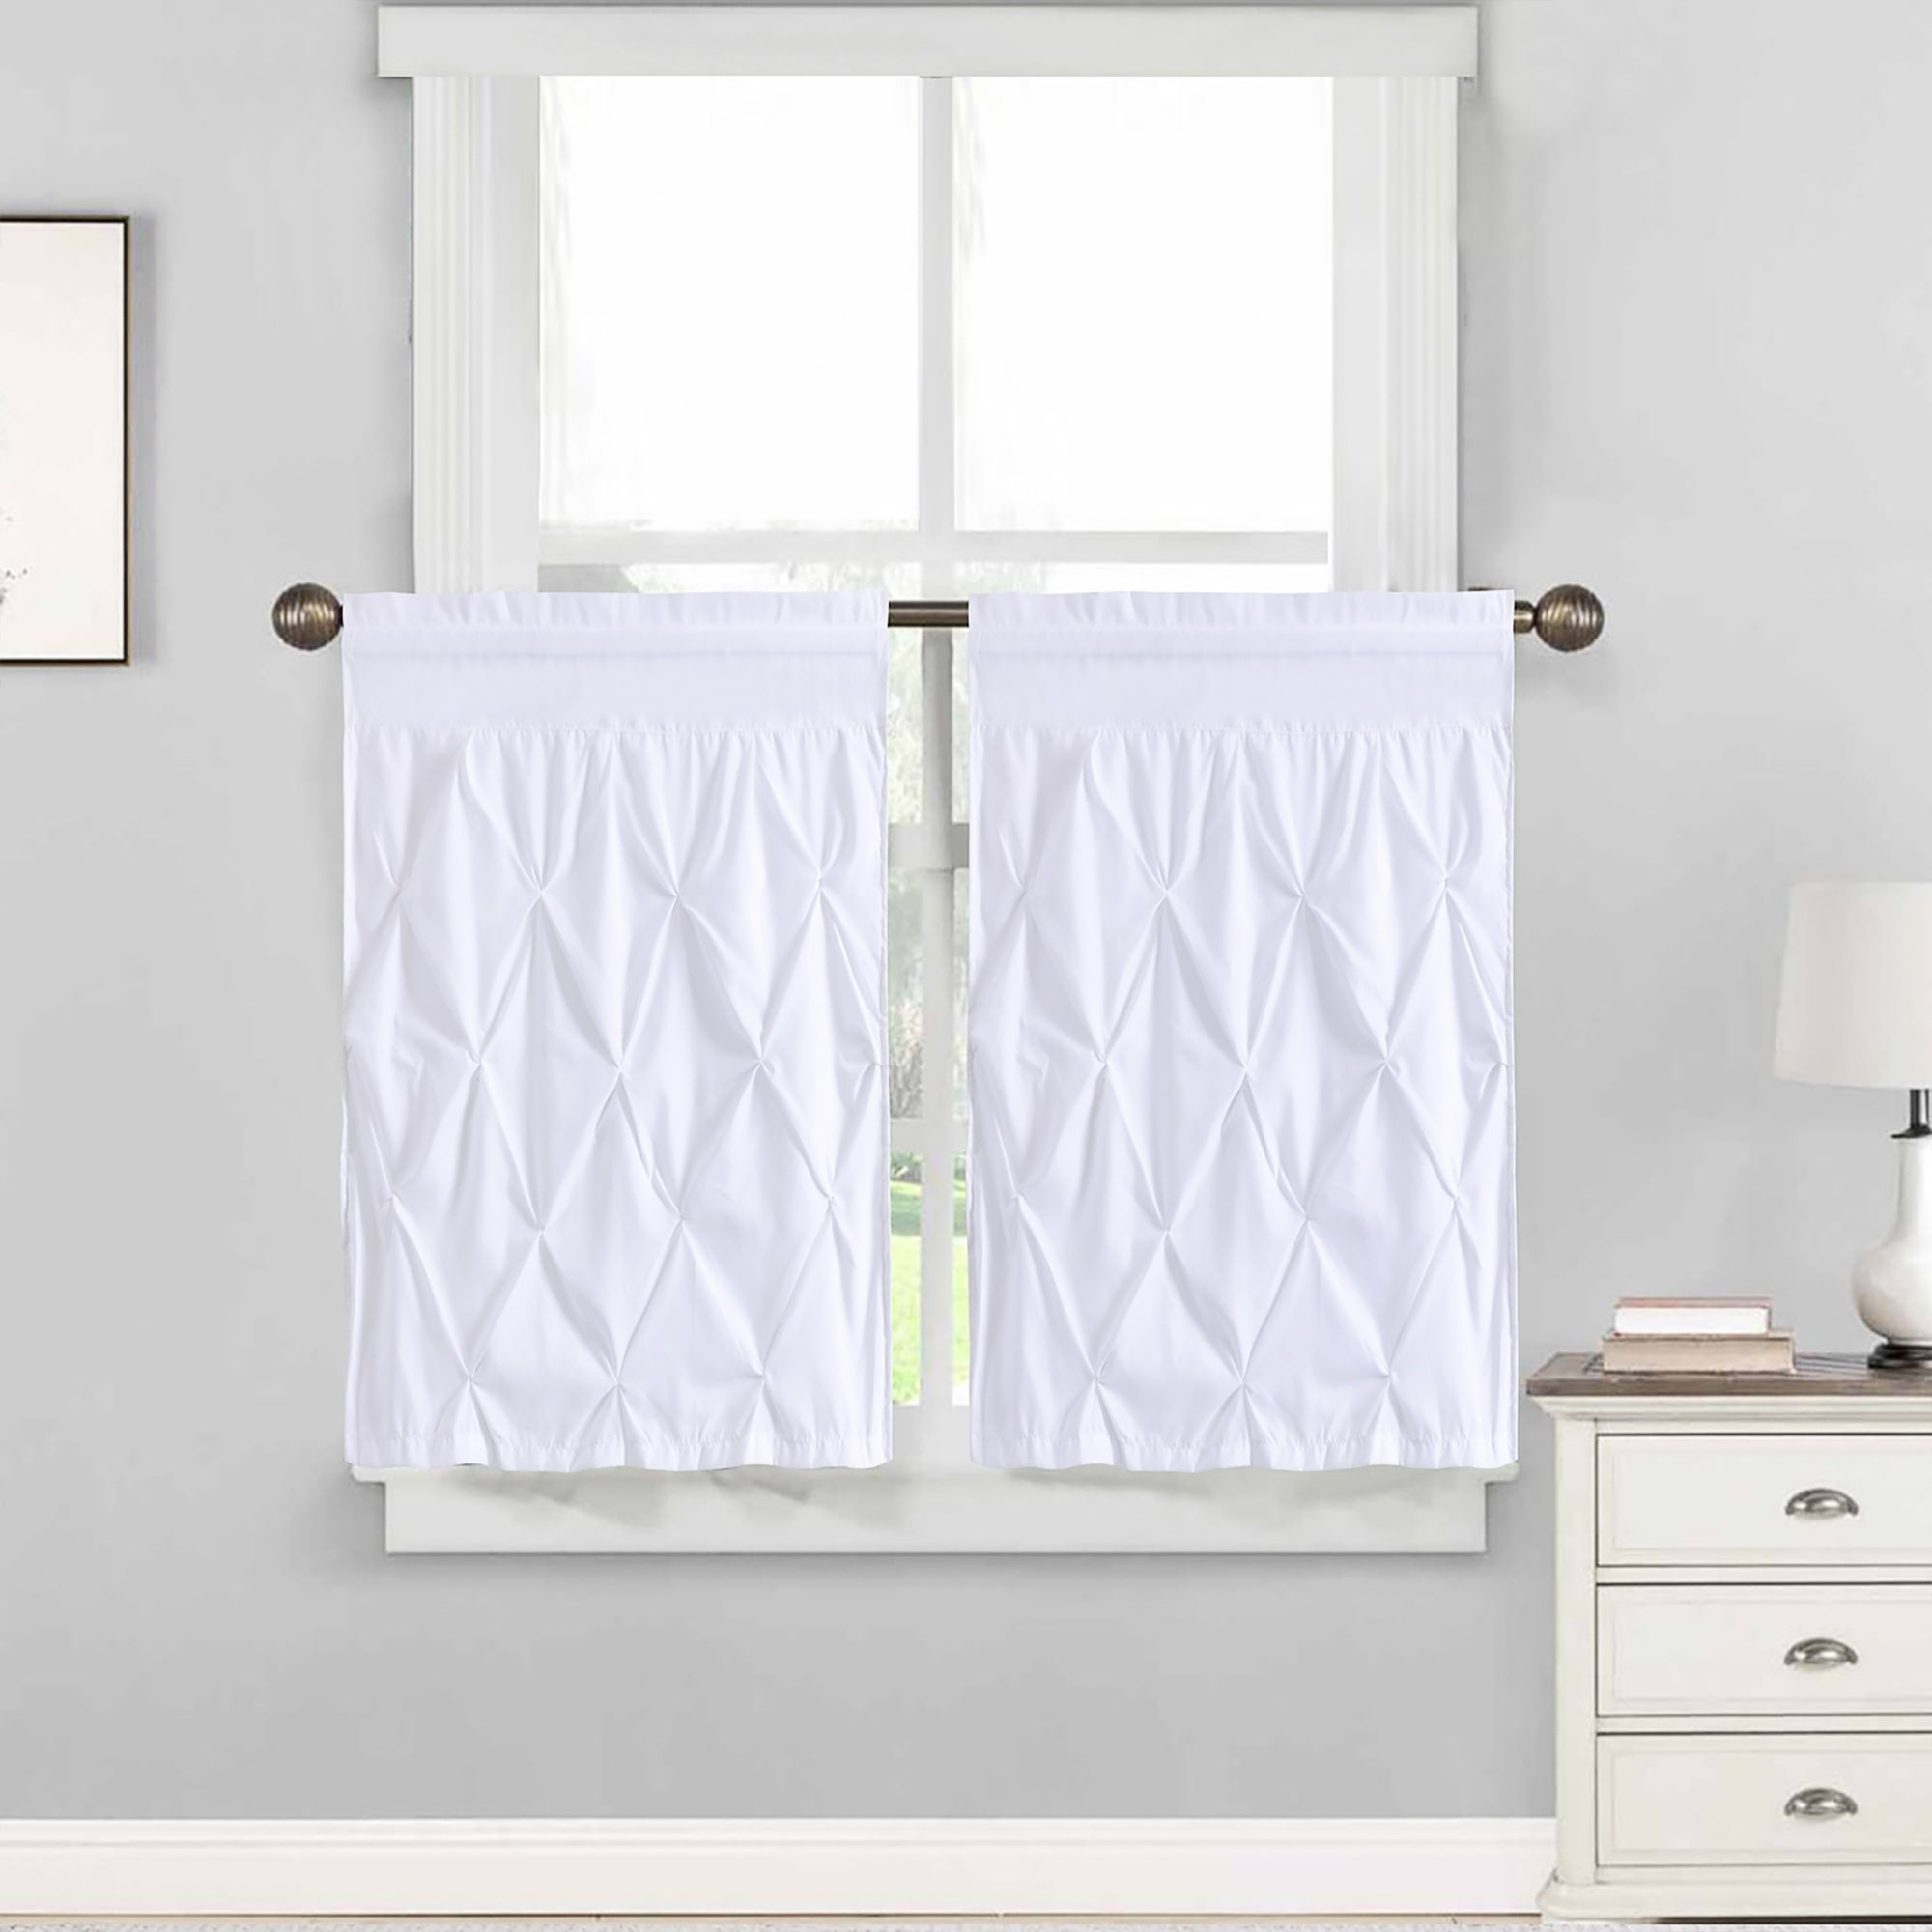 "Touch Of Spring 24 Inch Tier Pairs Pertaining To Current Hudson Pintuck Window Curtain Tier Pair (24""x30"") White – 36 Inch (View 10 of 20)"